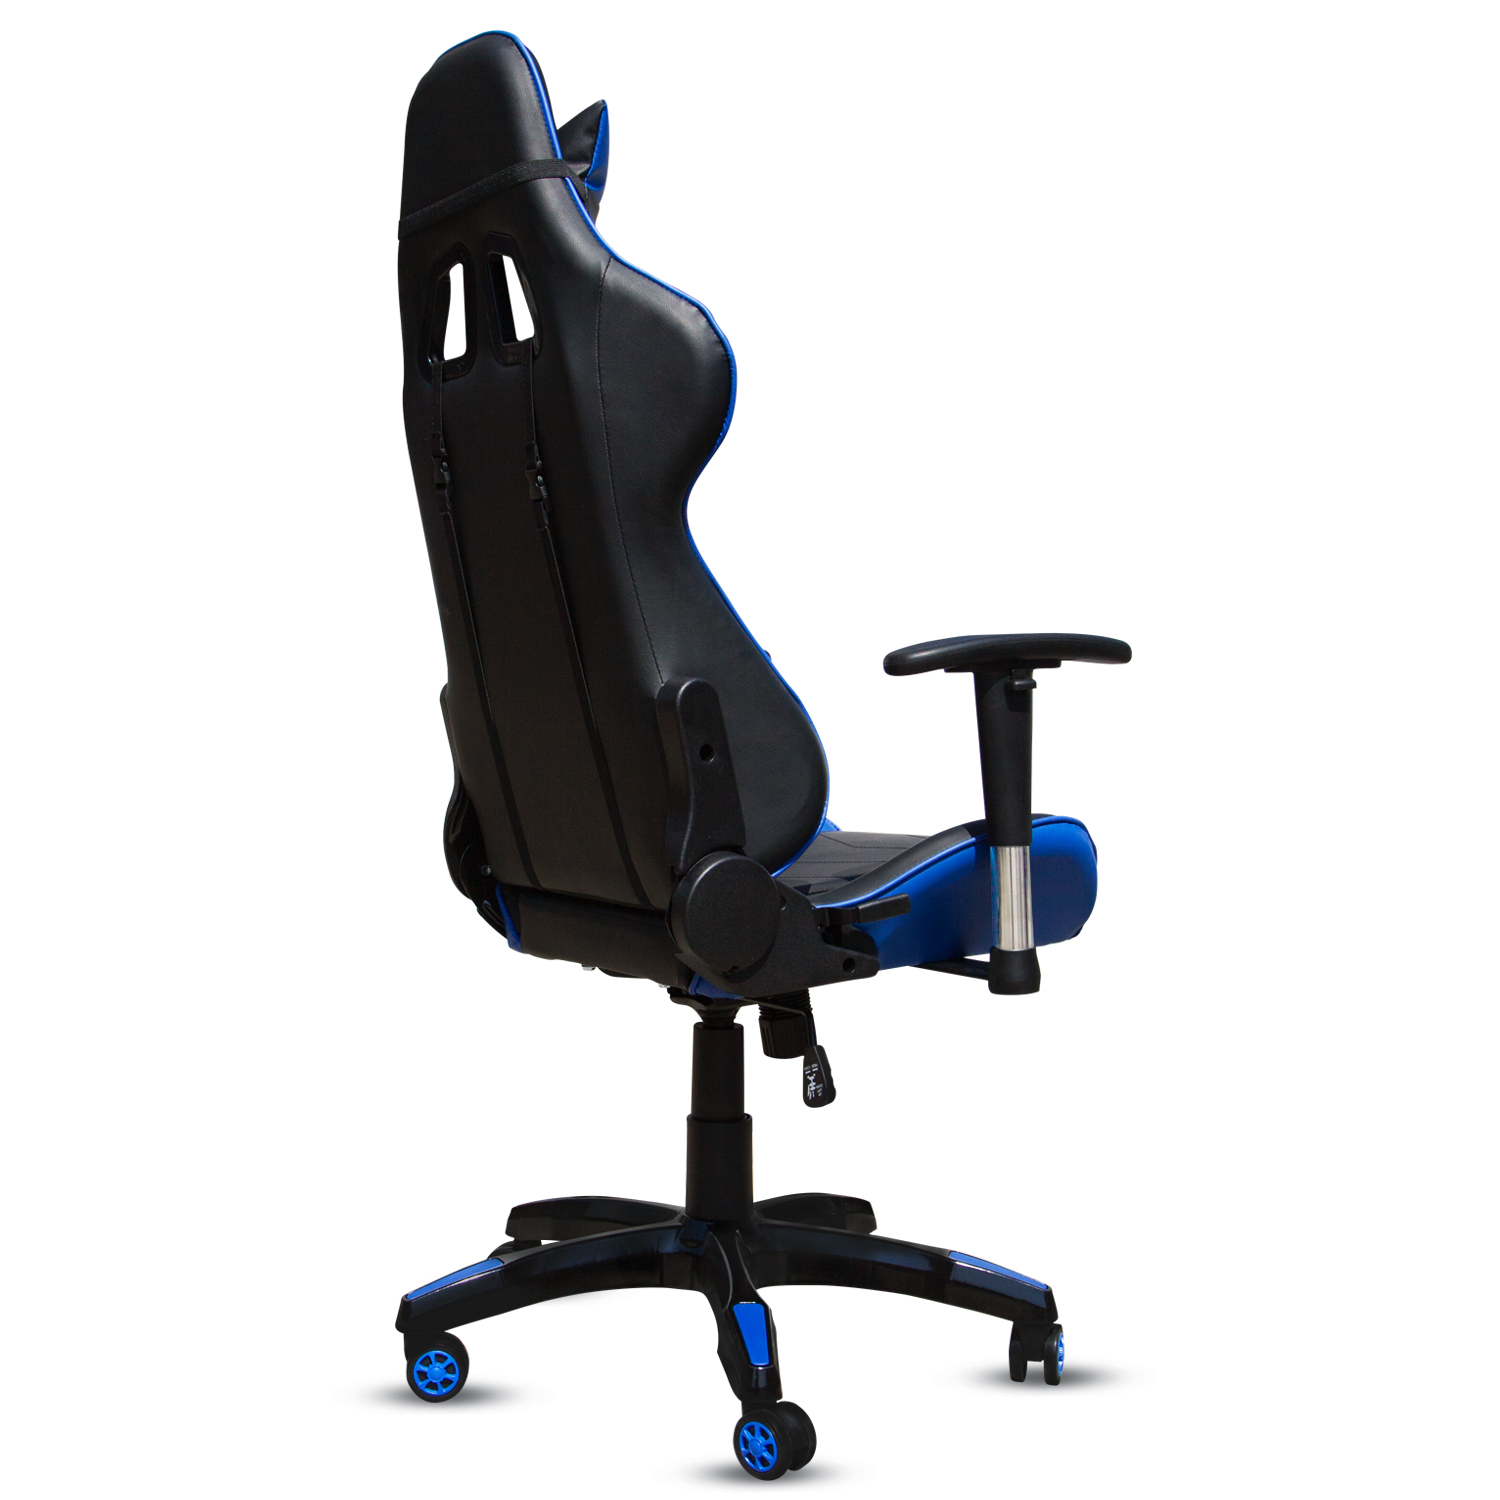 Executive Racing Gaming Chair Rake High Back Reclining PU Leather